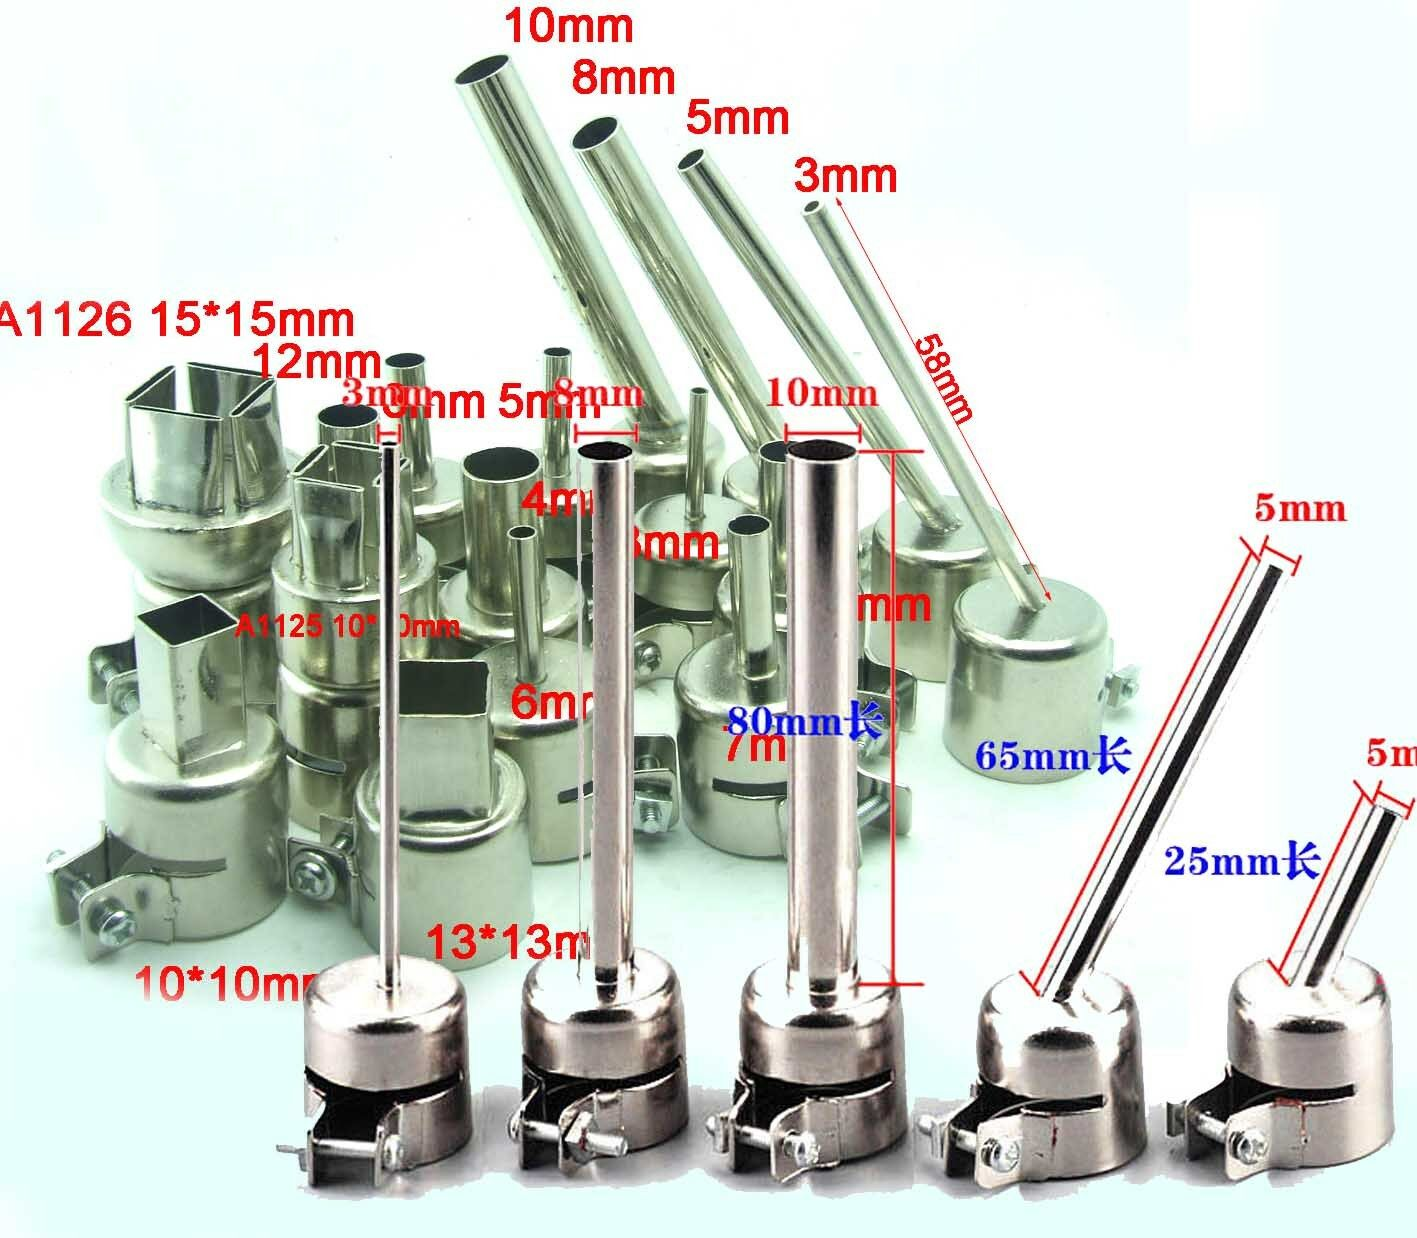 6mm Hot Air Nozzle for Rework Station bent single pipe soldering welding Ironing